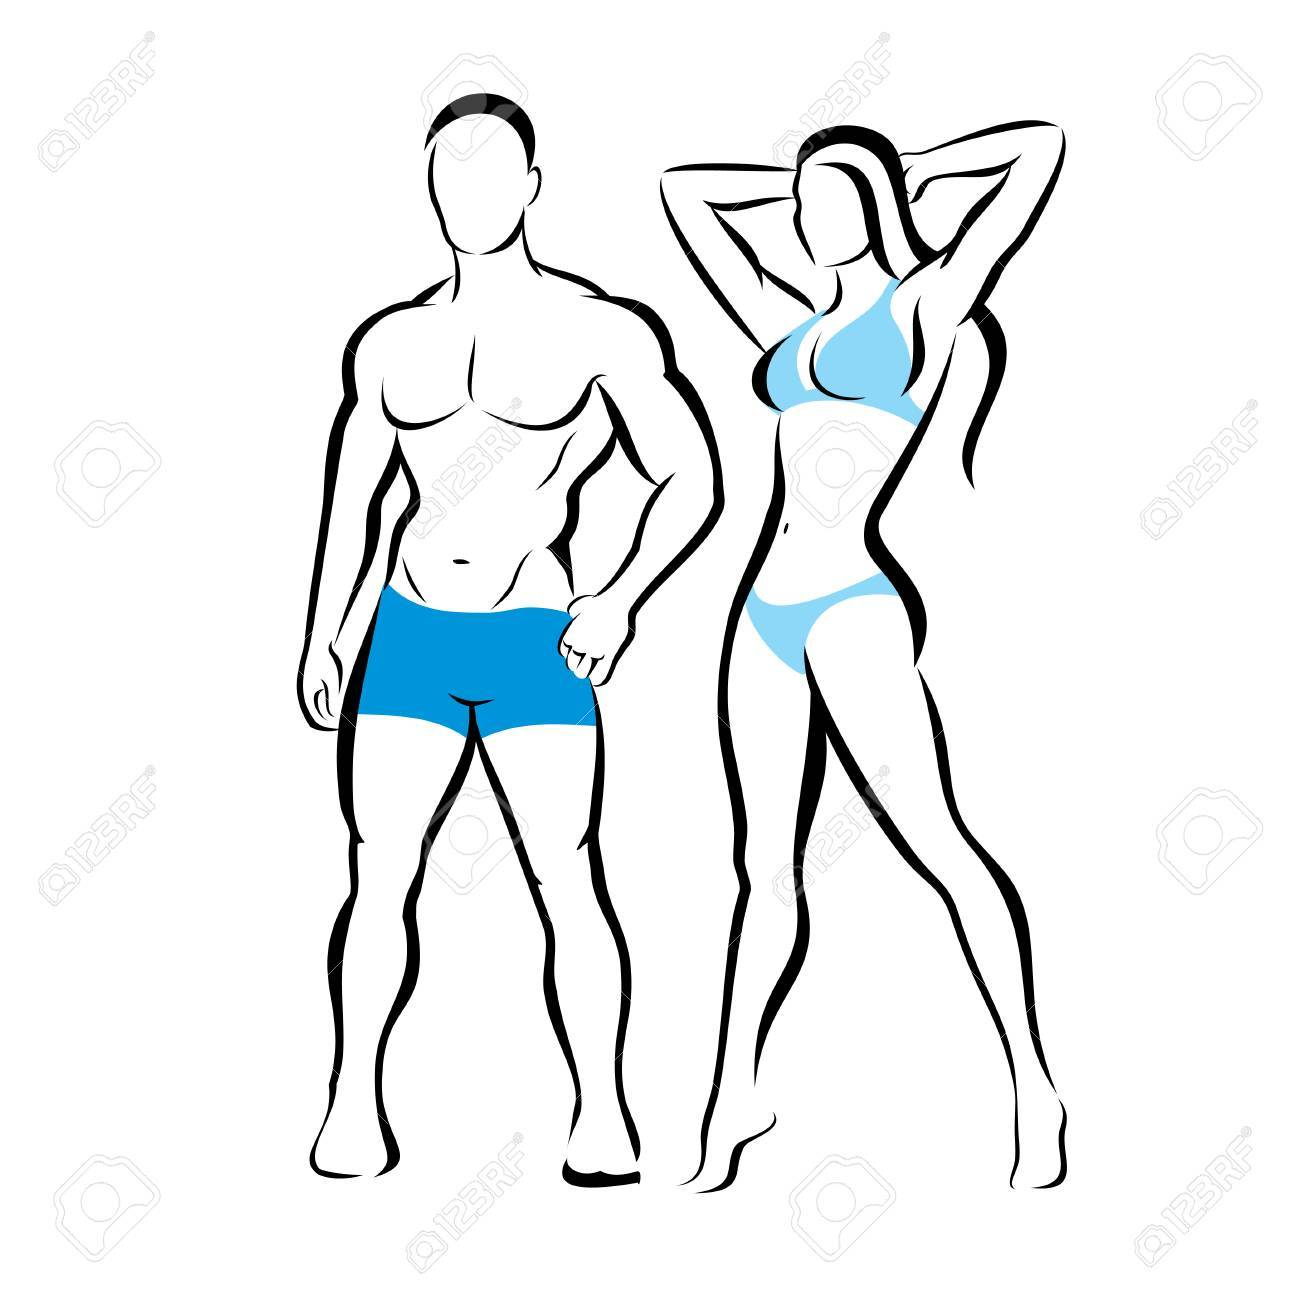 Perfect Body Of Man And Woman Silhouette Fitness Beauty Rh 123rf Com